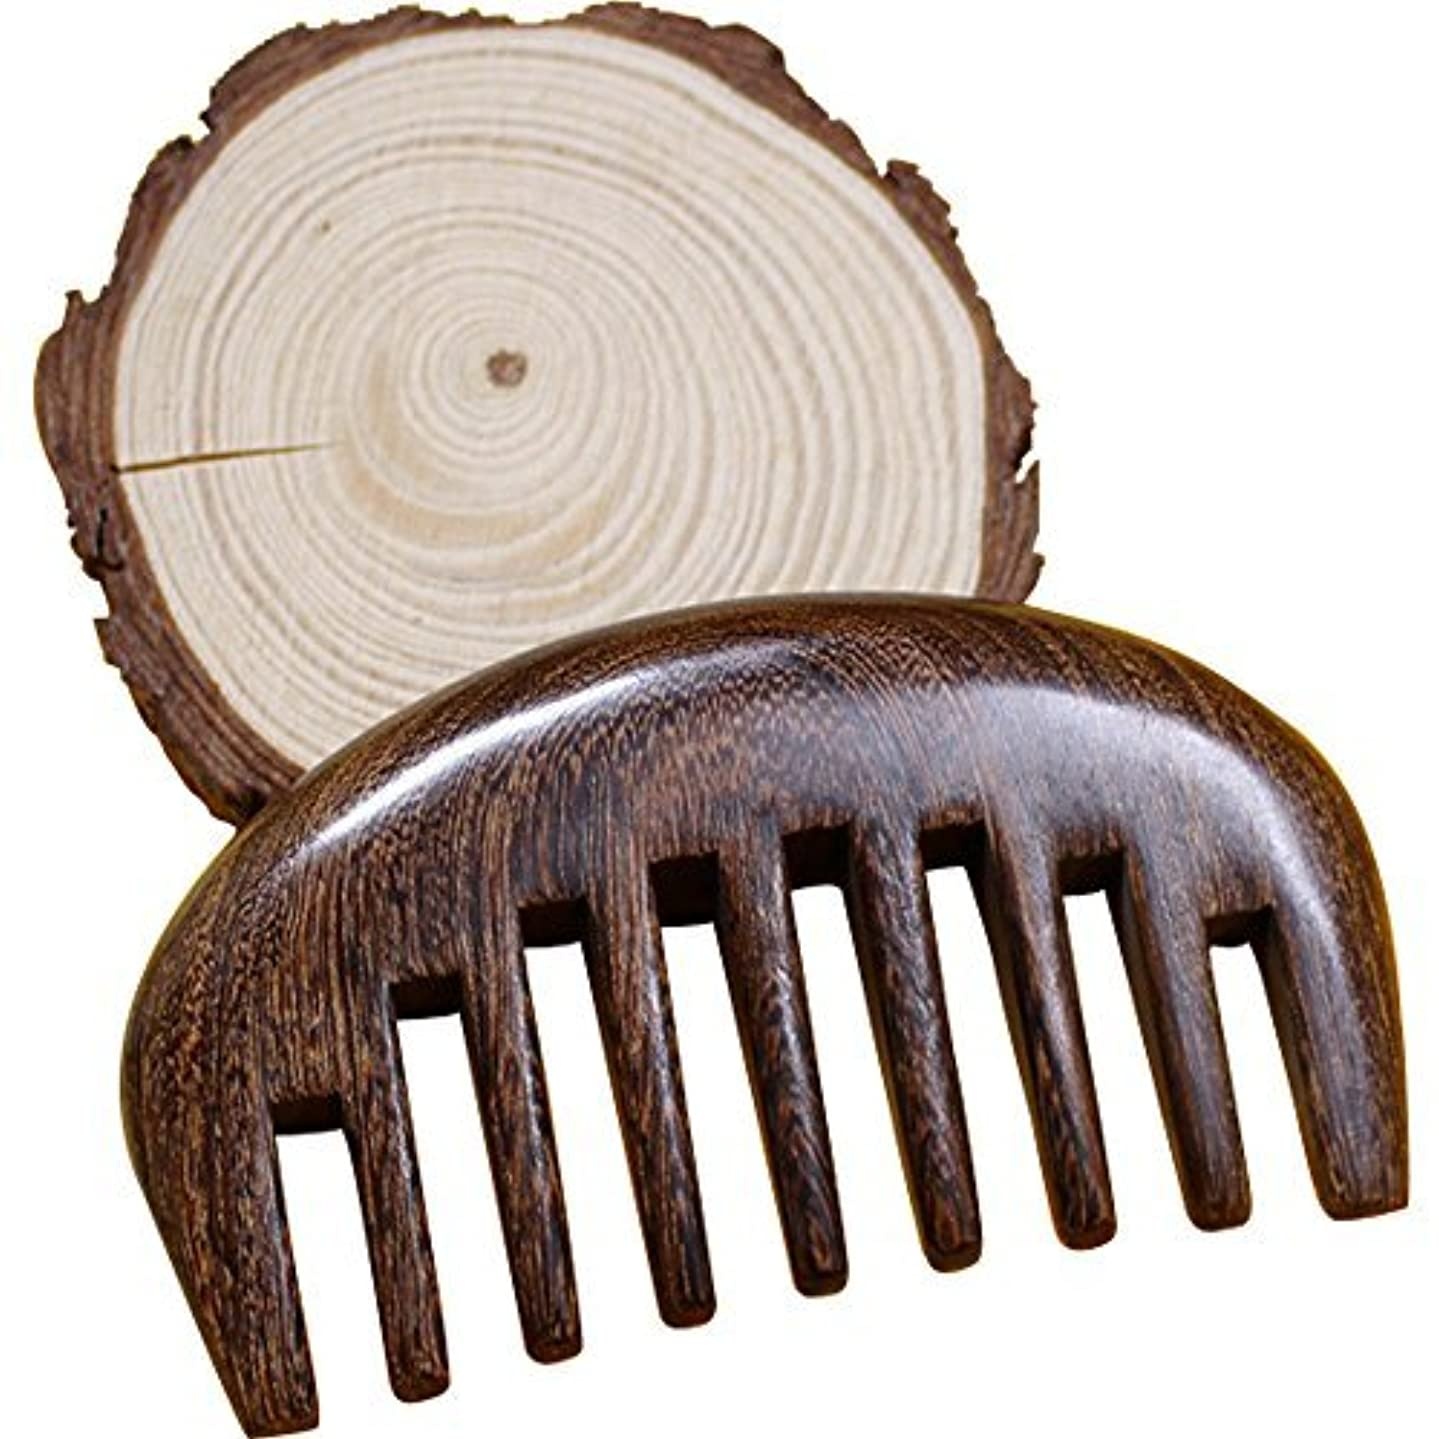 作曲家電話に出る決定するWood comb Wooden wide tooth hair comb detangler brush -Anti Static Sandalwood Scent handmad with gift package...